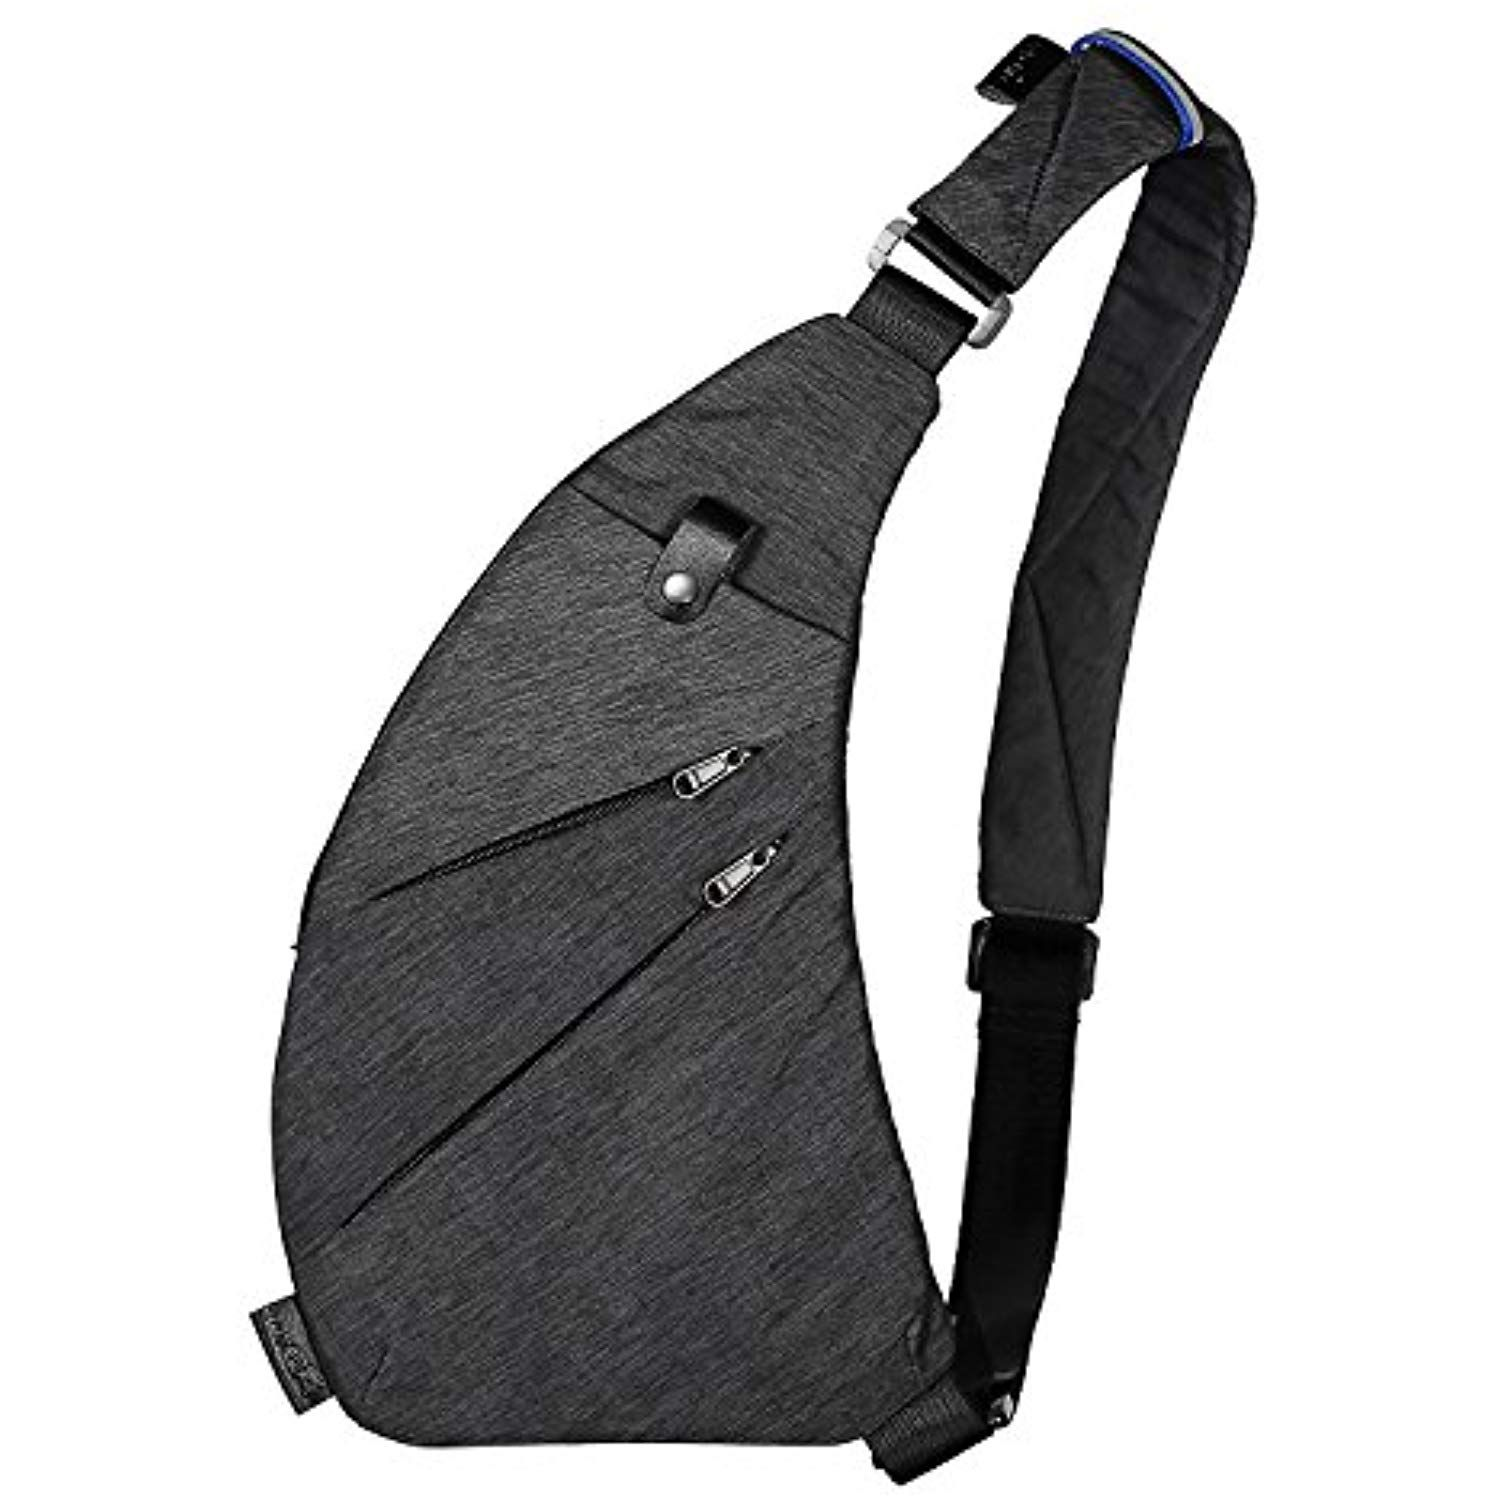 c60b4590903f Sling Backpack Shoulder Chest Crossbody Bag Lightweight Casual Outdoor  Sport Travel Hiking Multipurpose Anti Theft Cross Body Back Pack Bags Up to  7.9 Inch ...